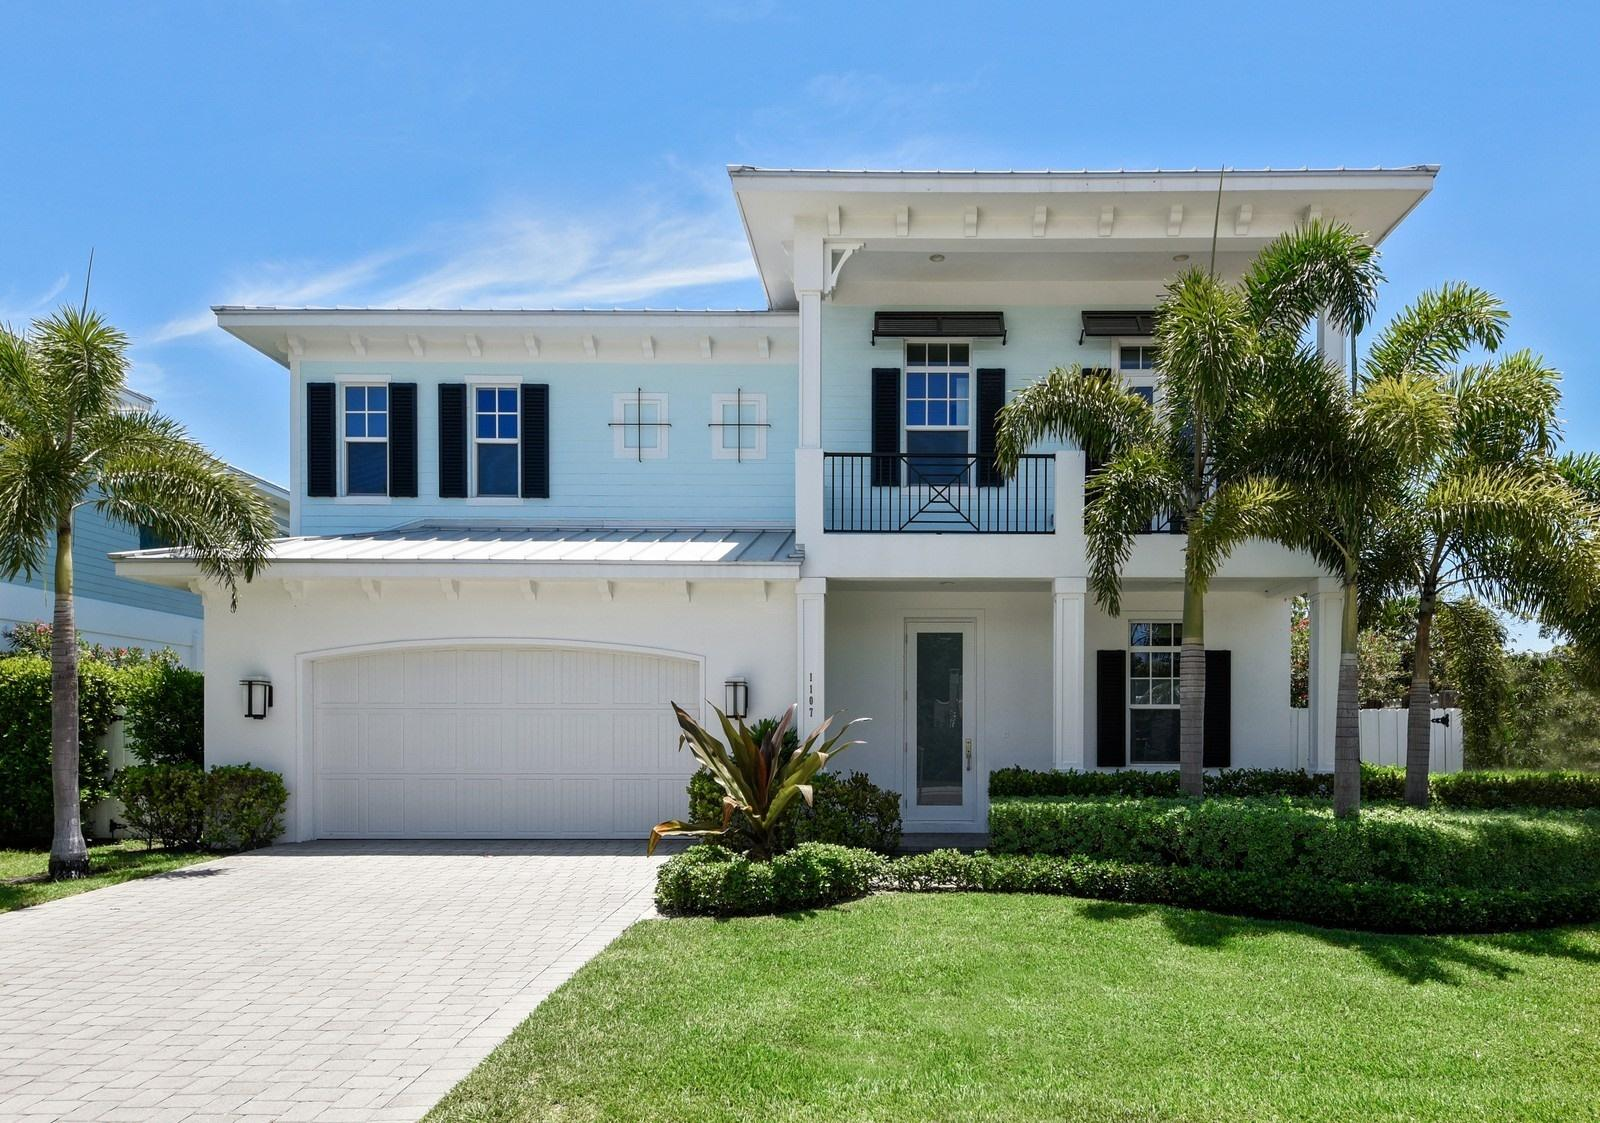 1107 2nd Avenue, Delray Beach, Florida 33444, 4 Bedrooms Bedrooms, ,4 BathroomsBathrooms,Single Family,For Sale,2nd,RX-10440183